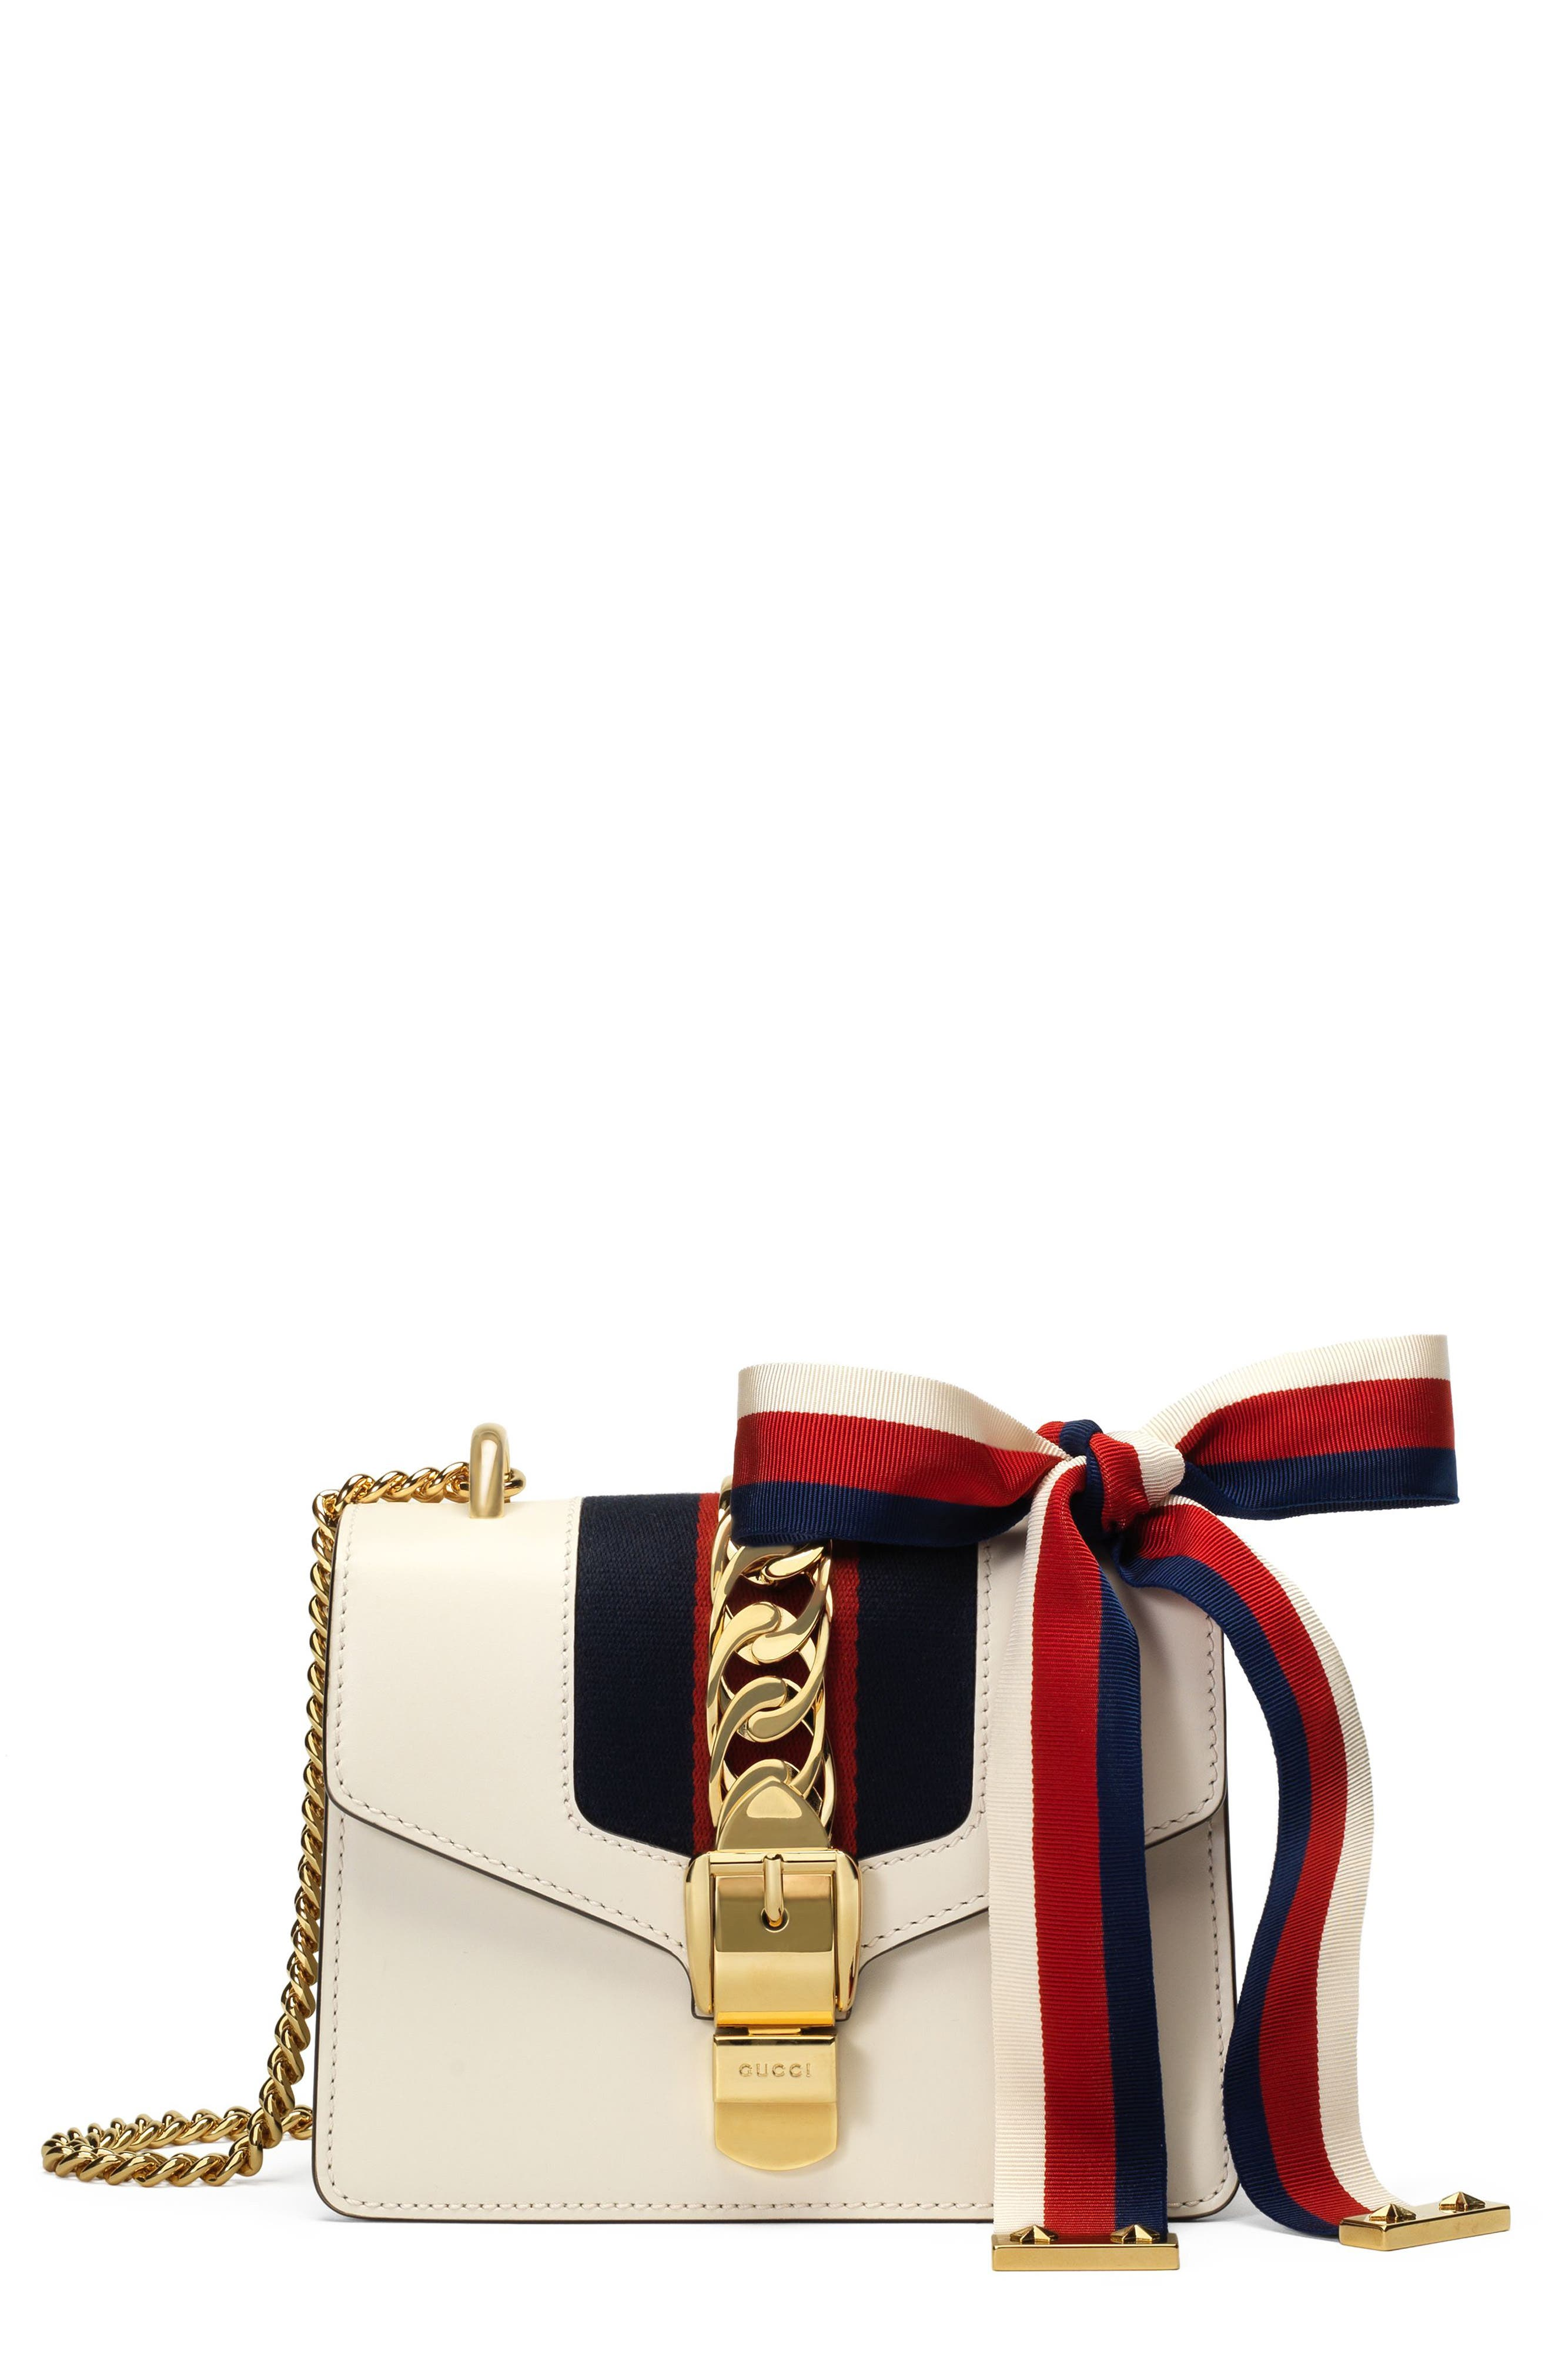 gucci bags at nordstrom. gucci mini sylvie leather shoulder bag bags at nordstrom